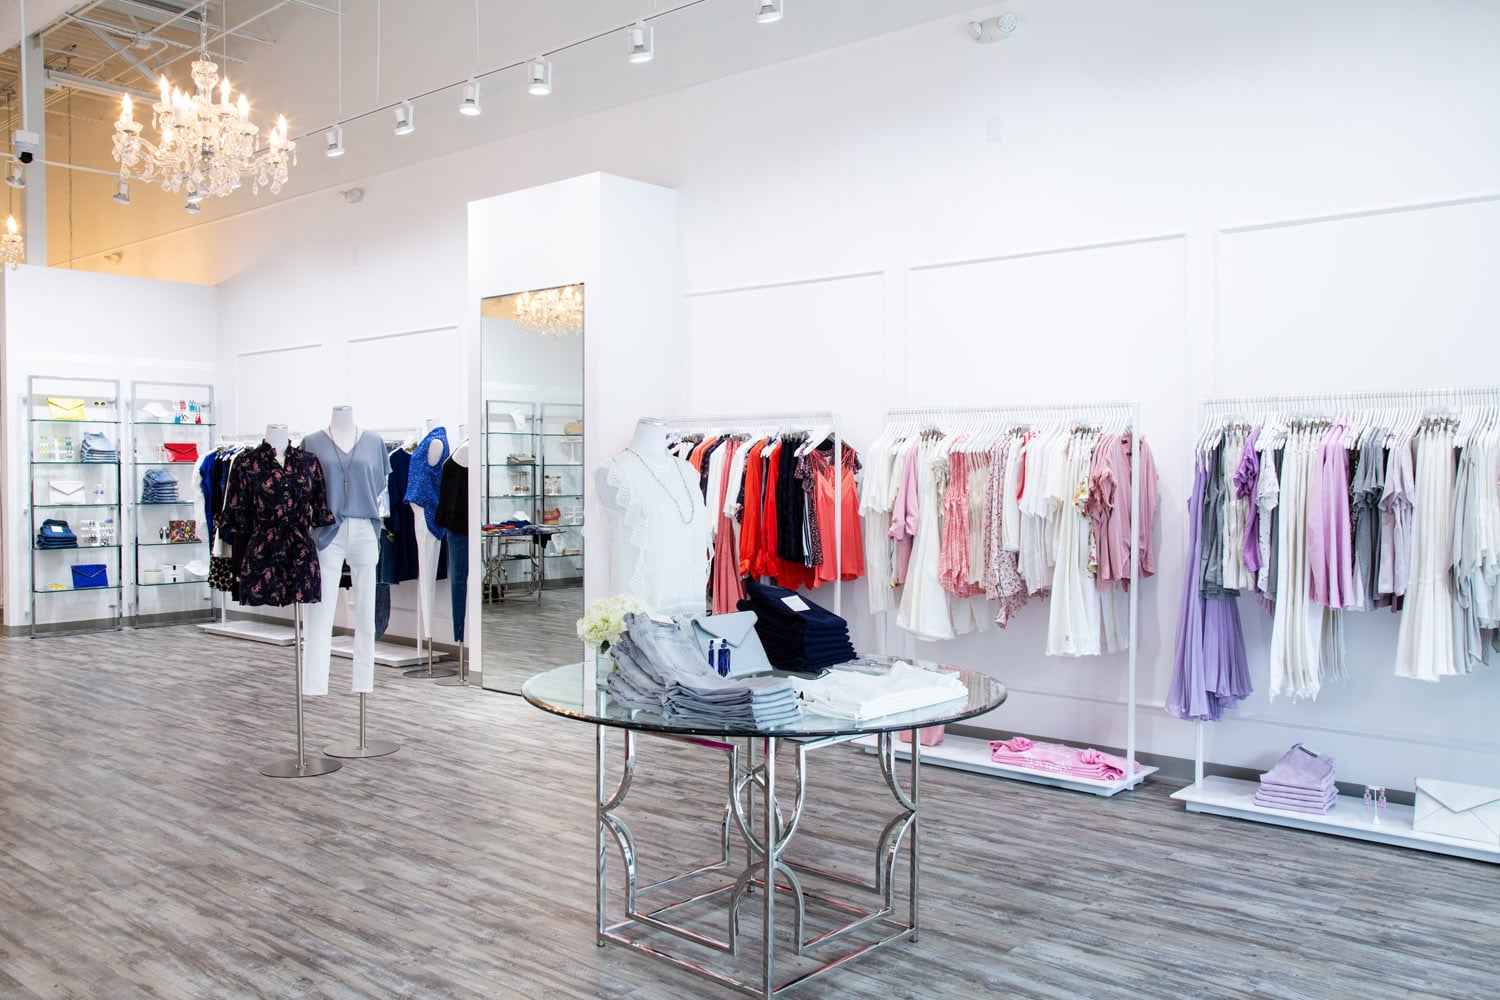 French Cuff Boutique in The Woodlands is now open